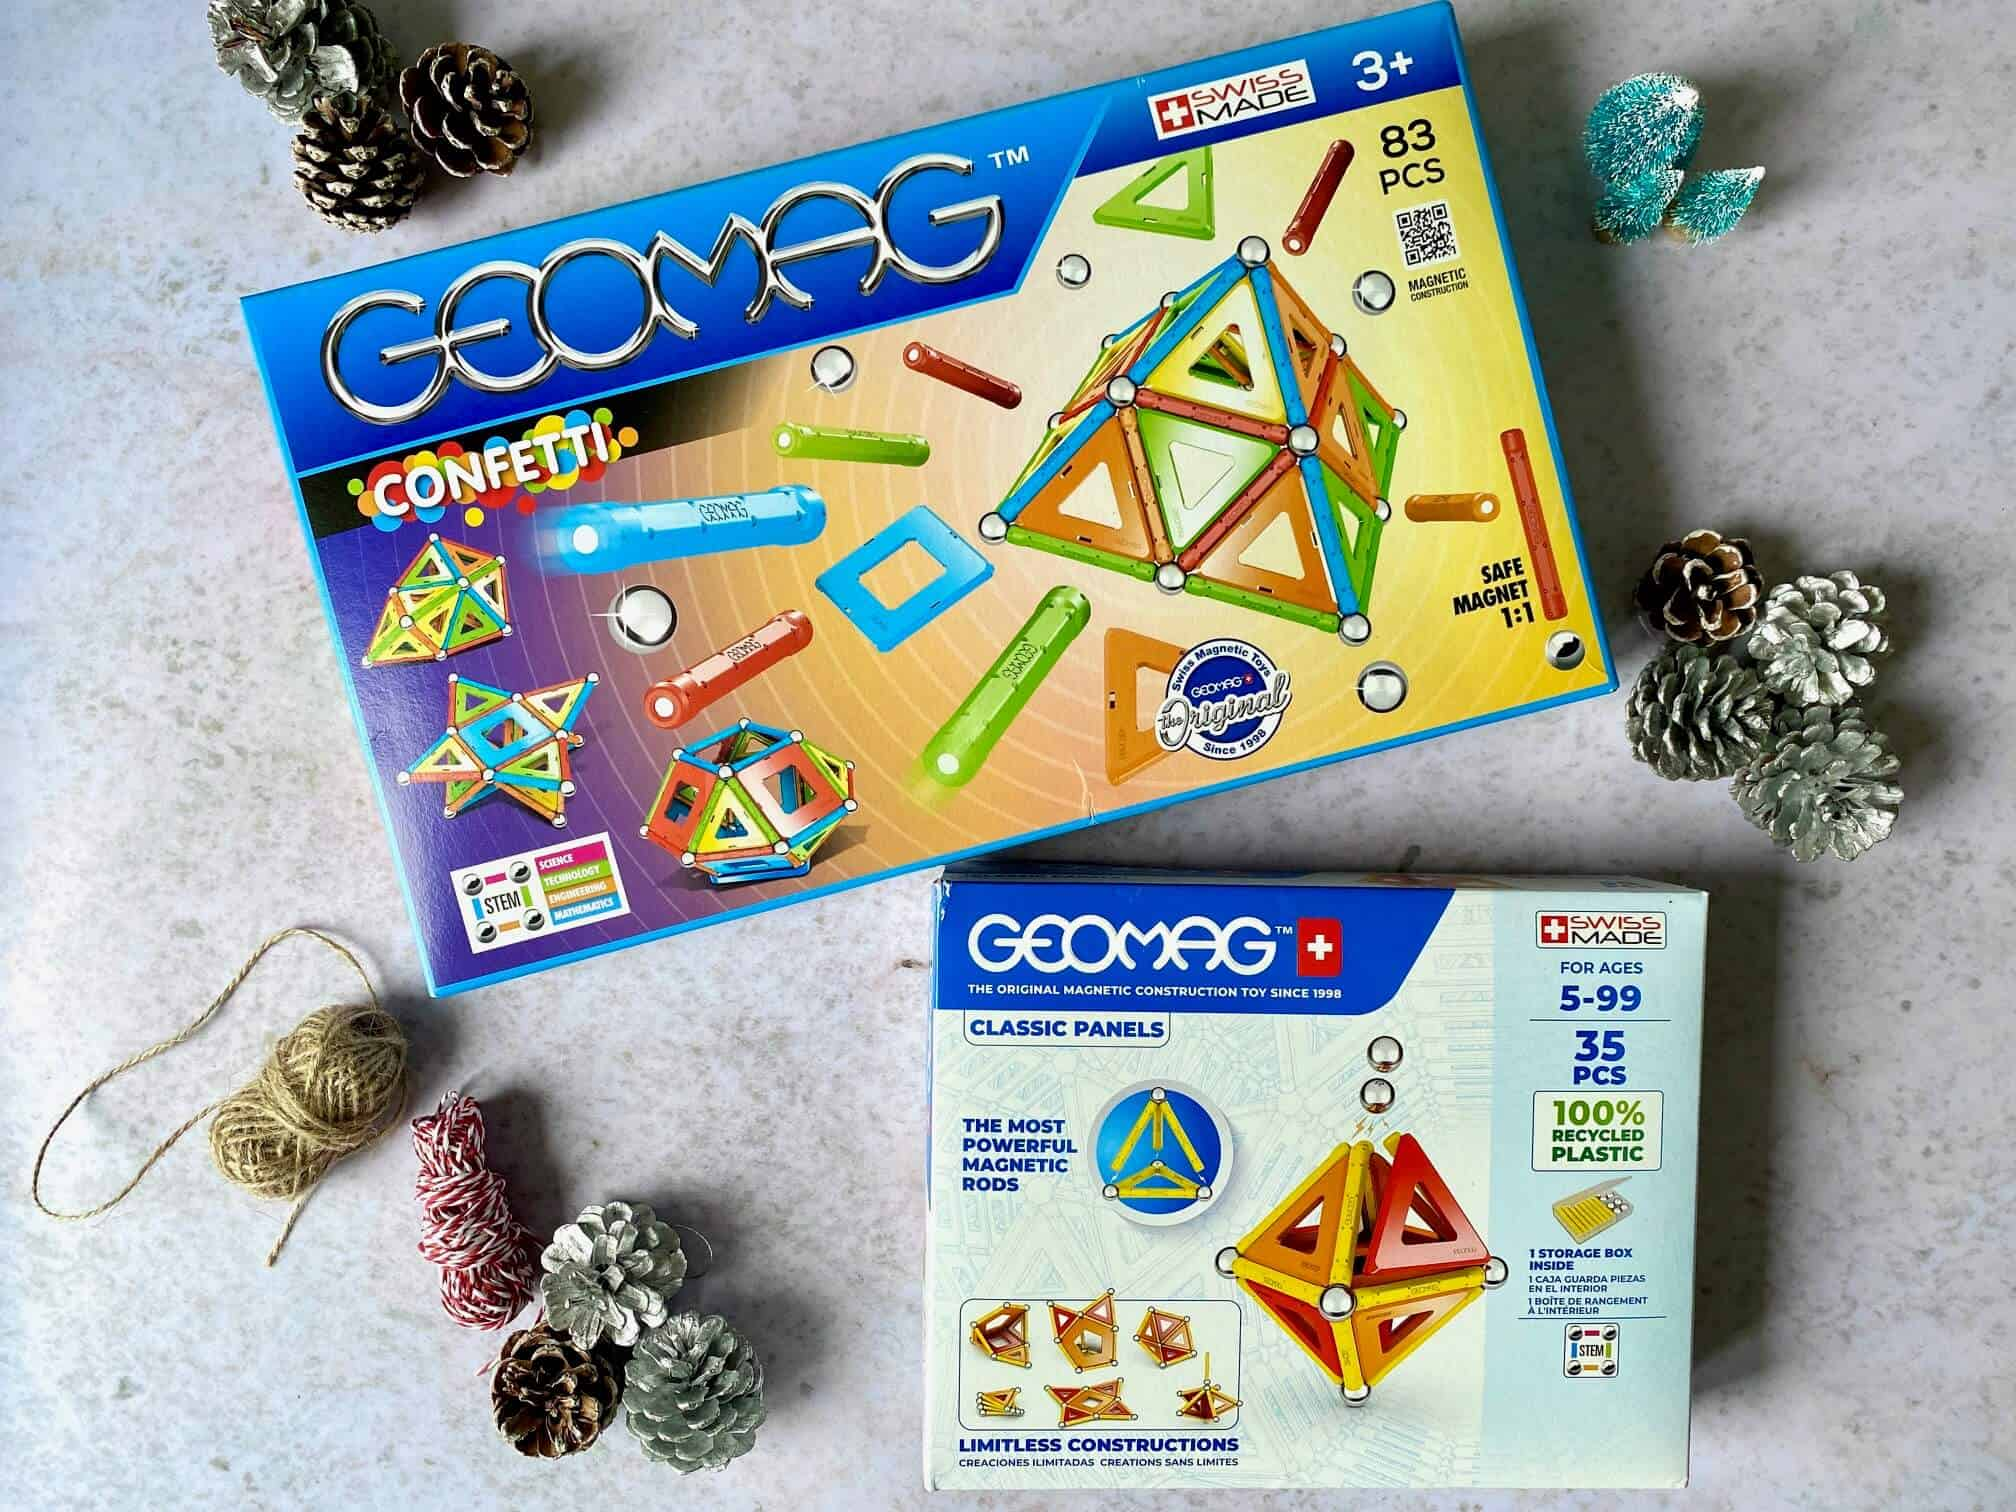 12 Days of Christmas Giveaways – Day 11 Win Geomag Construction Sets